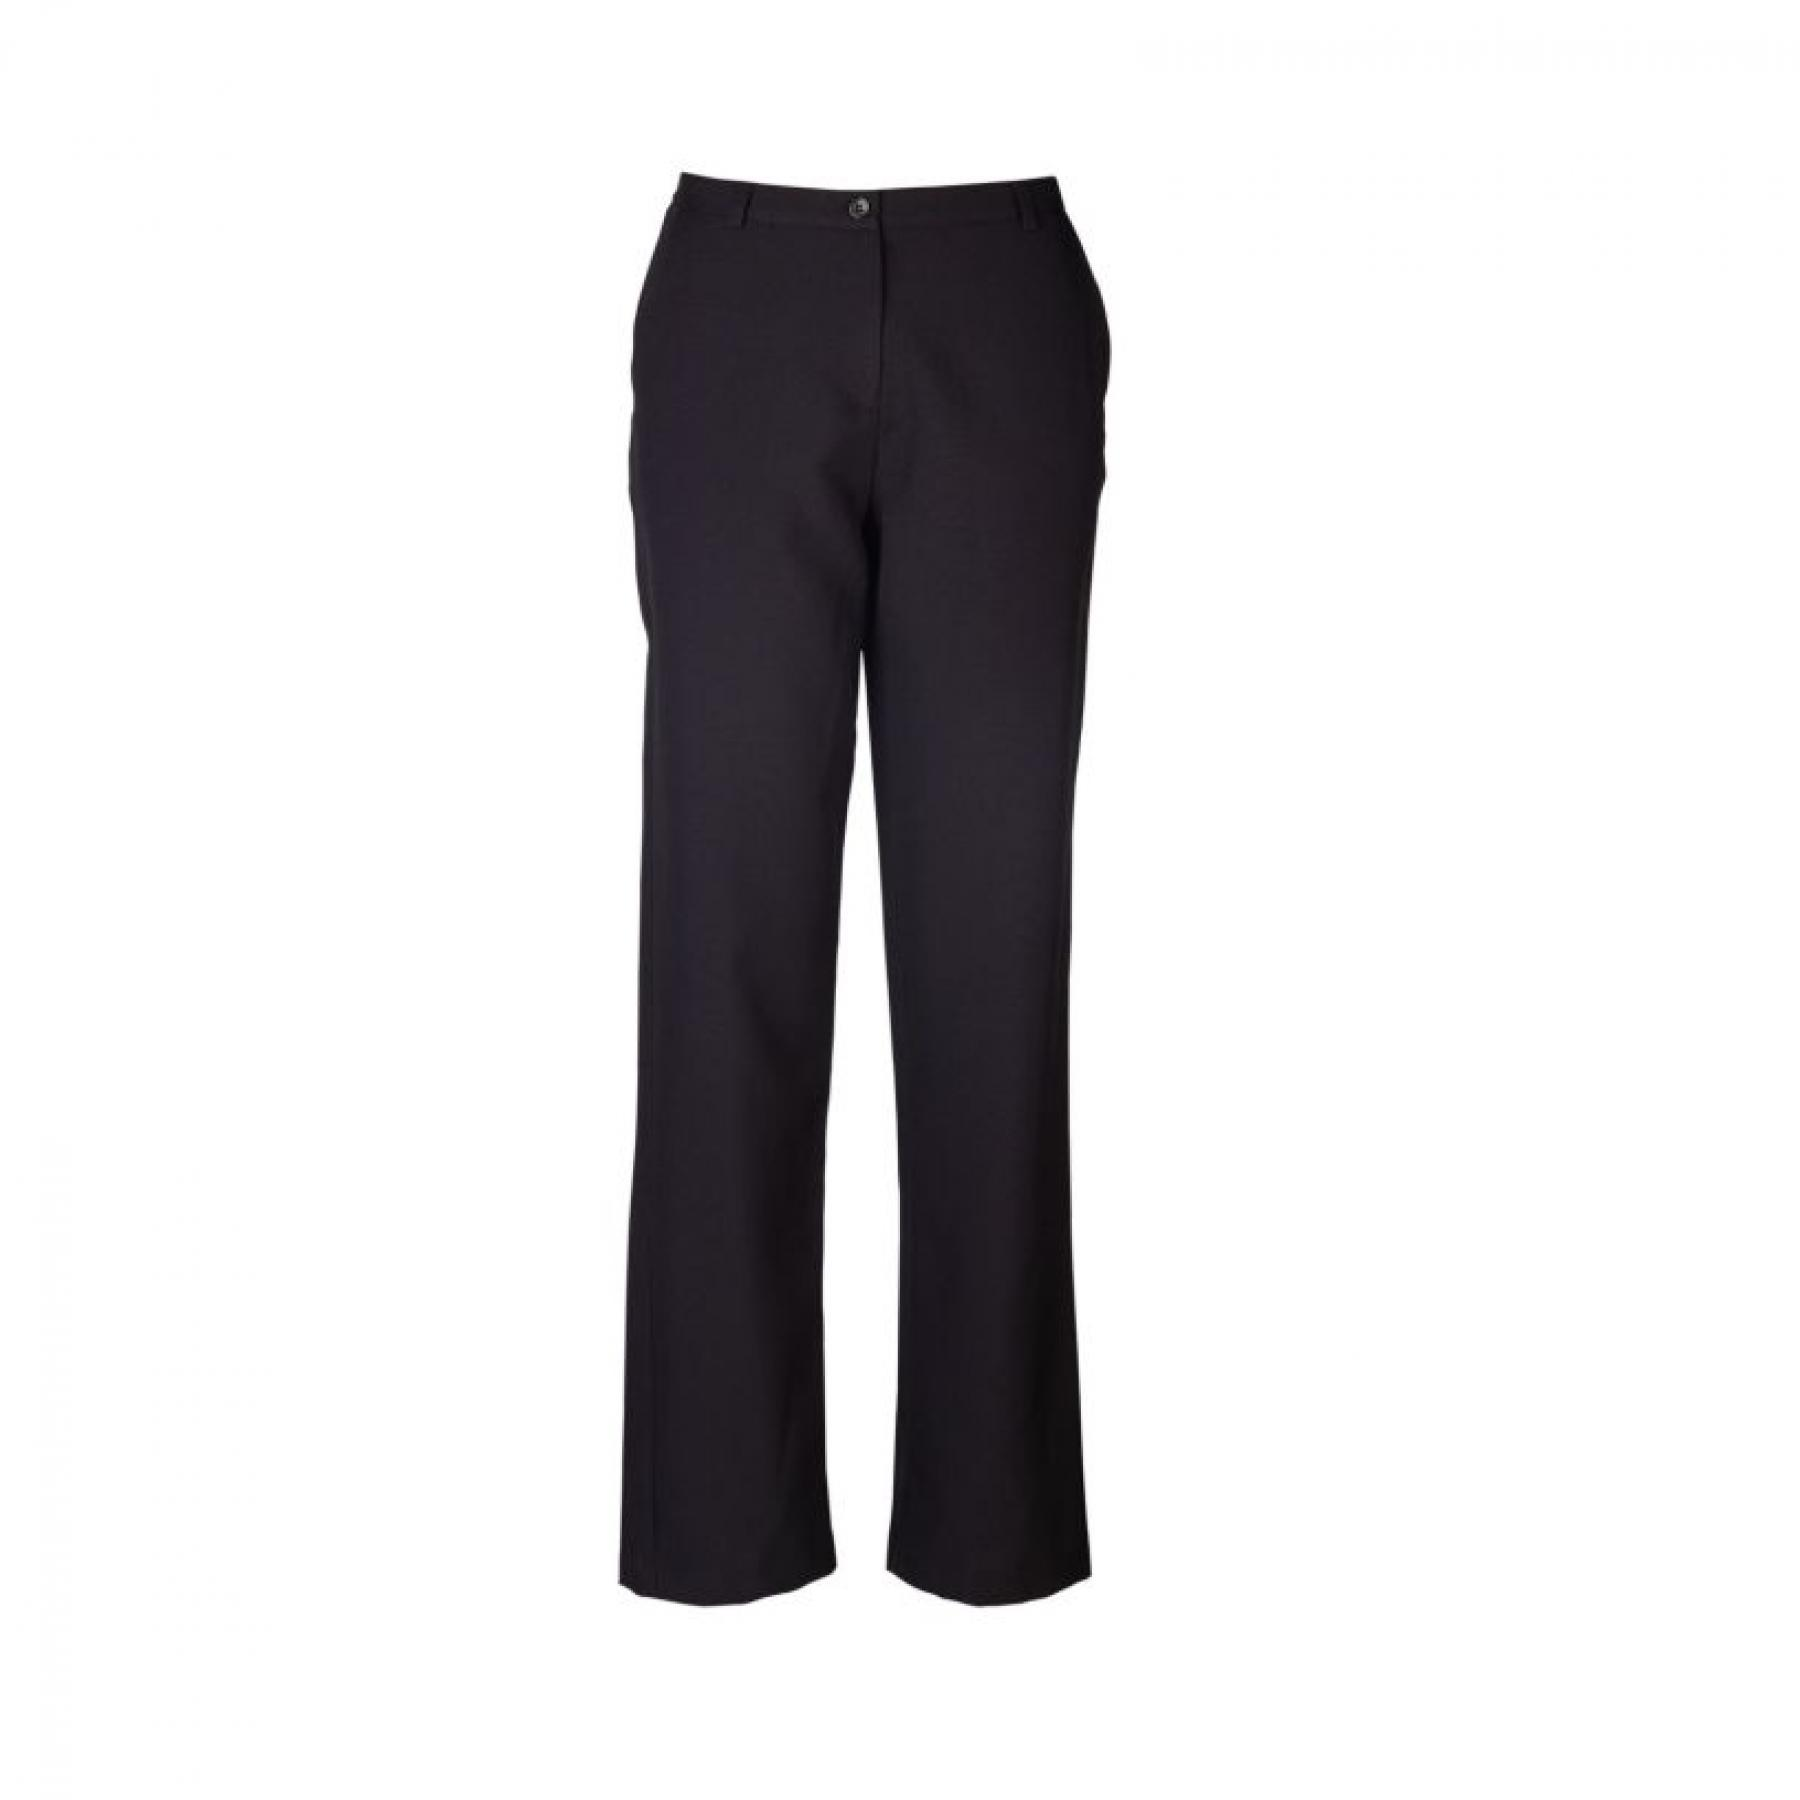 Kerry Straight Cut Slacks - Black